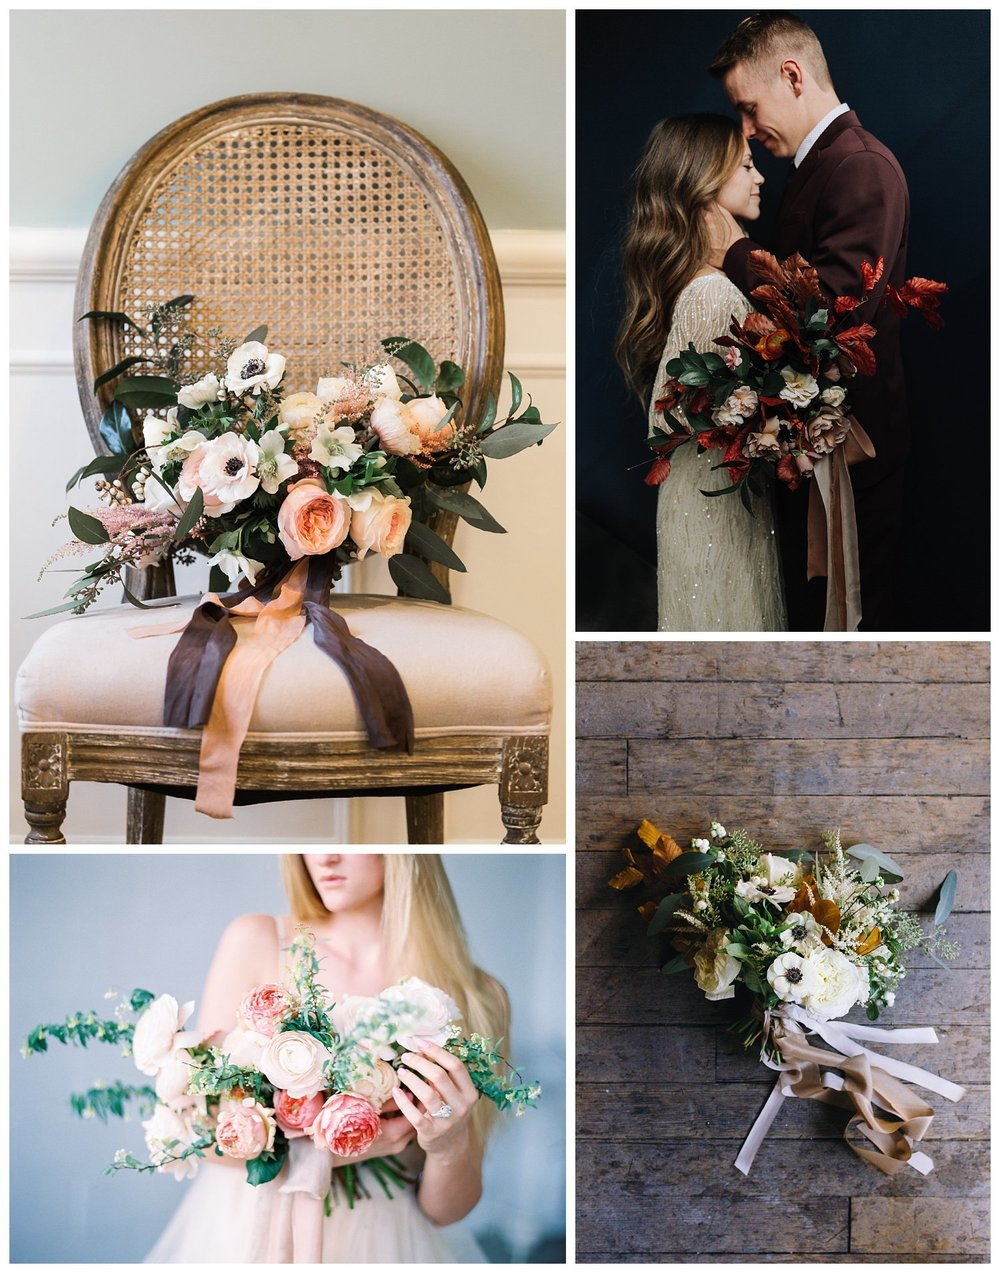 Top left: Rachel Lindsey Photography | Bottom left: Brushfire Photography | Top right: Talia Photography | Bottom right: Burlap and Blossom